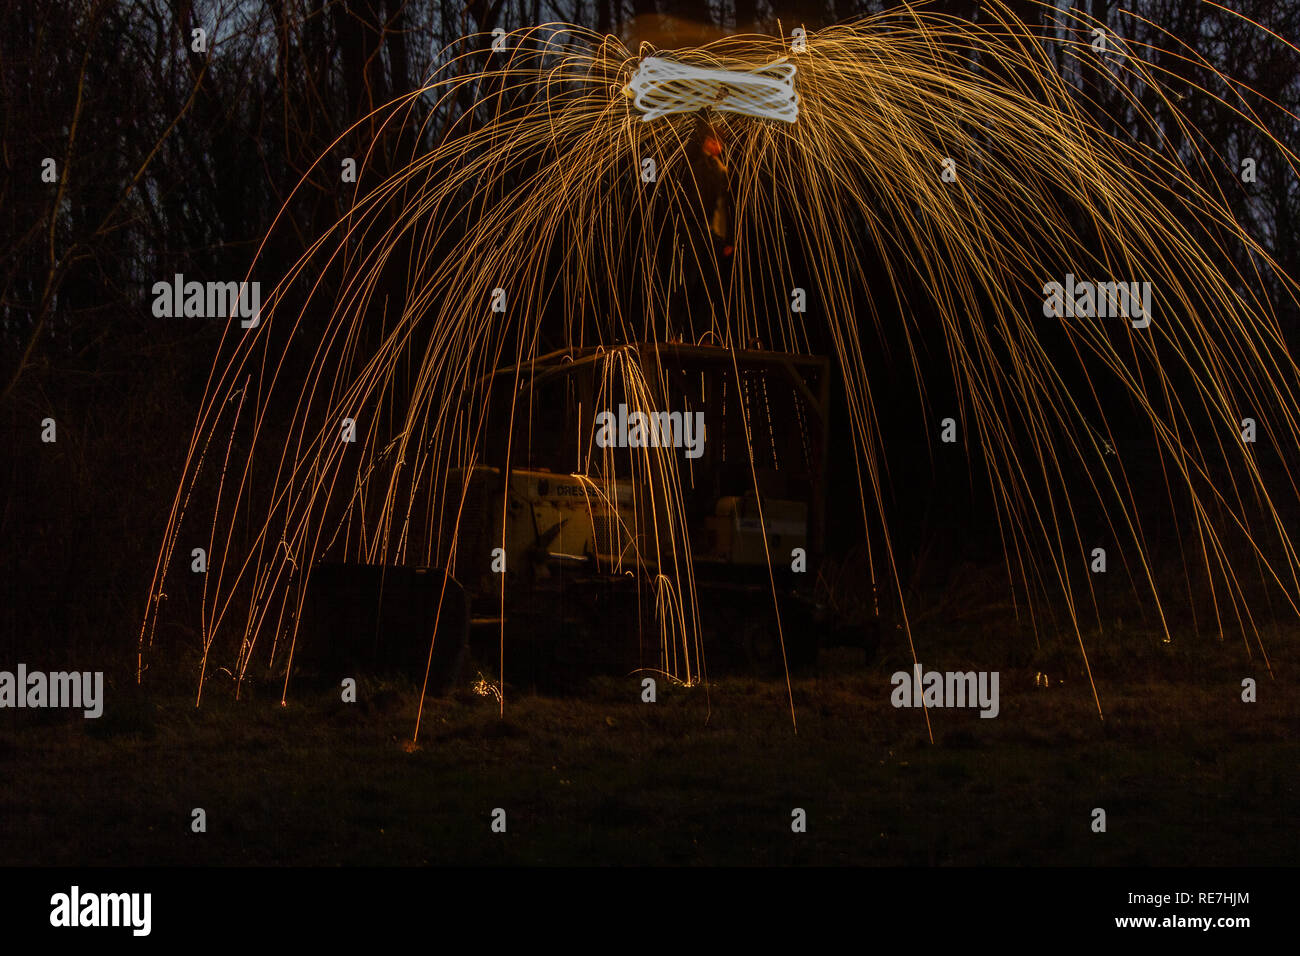 Steel wool photo on top bulldozer, January 2019, from Kimball, Tennessee. Night shot taken with long exposure on tripod. Stock Photo